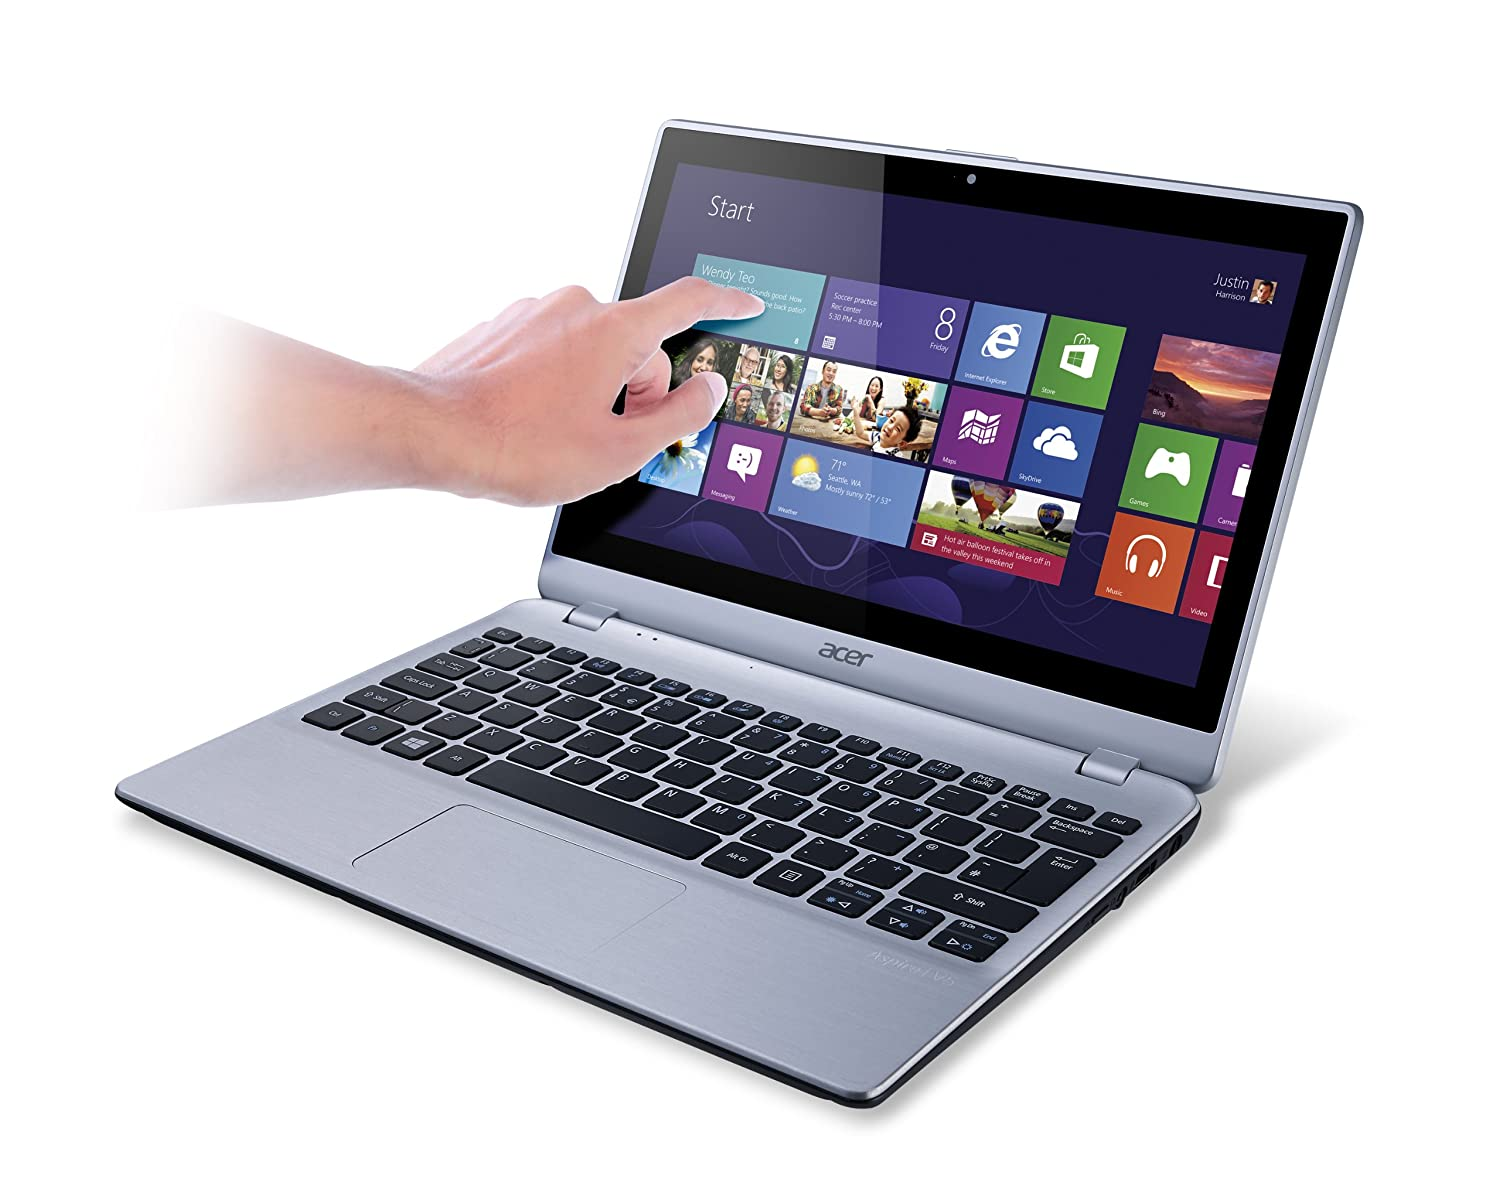 Acer Aspire V5-122P-0825 11.6-Inch Touchscreen Laptop